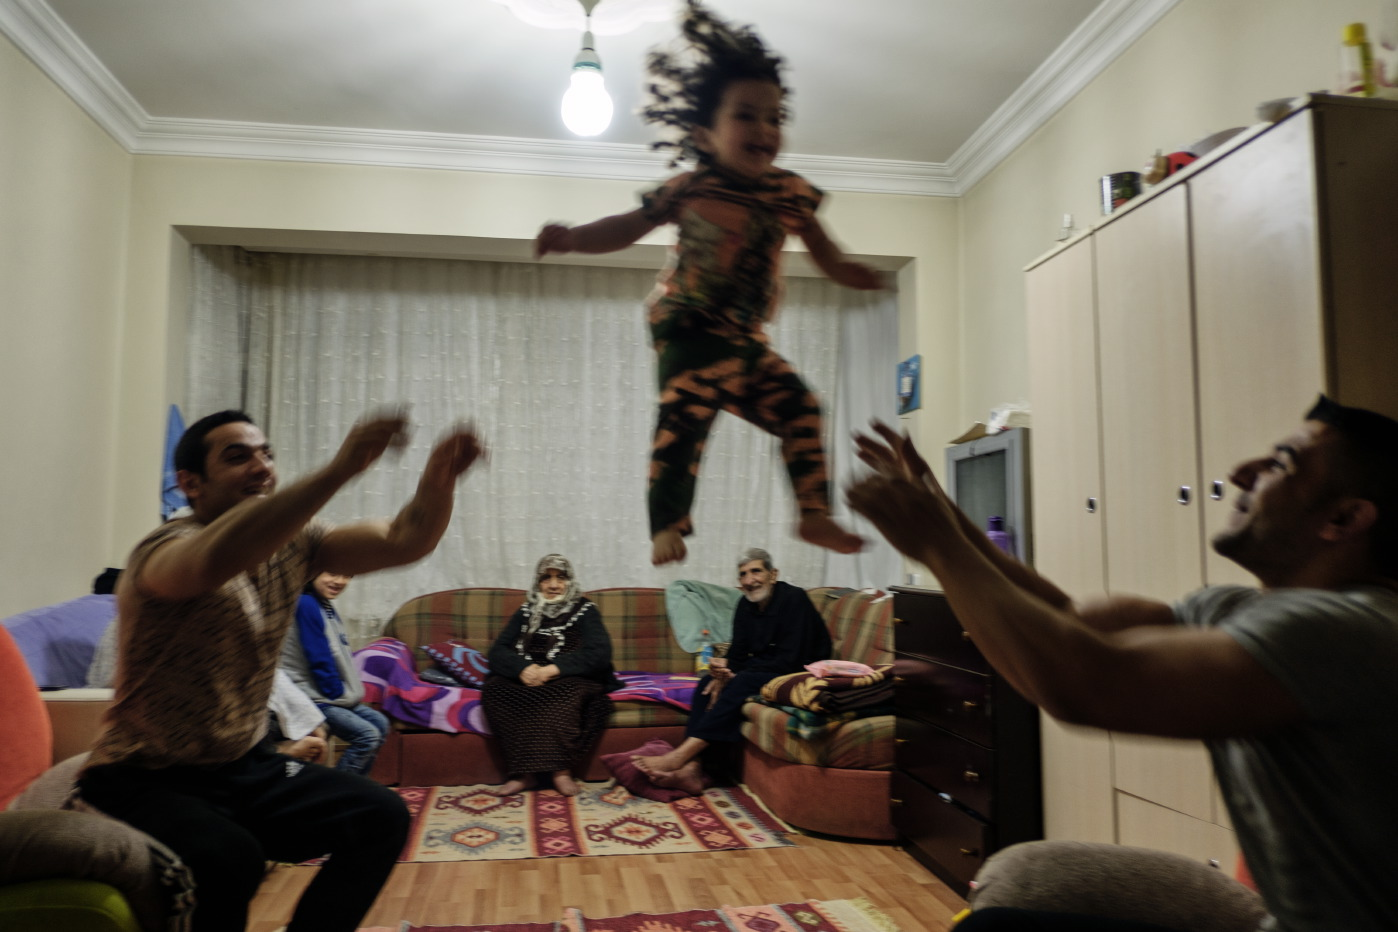 31-year-old Mustafa throws his niece to his 39-year-old brother-in-law Ibrahim Shehabi, while their elderly grandparents and other relatives enjoy the scene. Istanbul, Turkey 2016. © Matteo Bastianelli